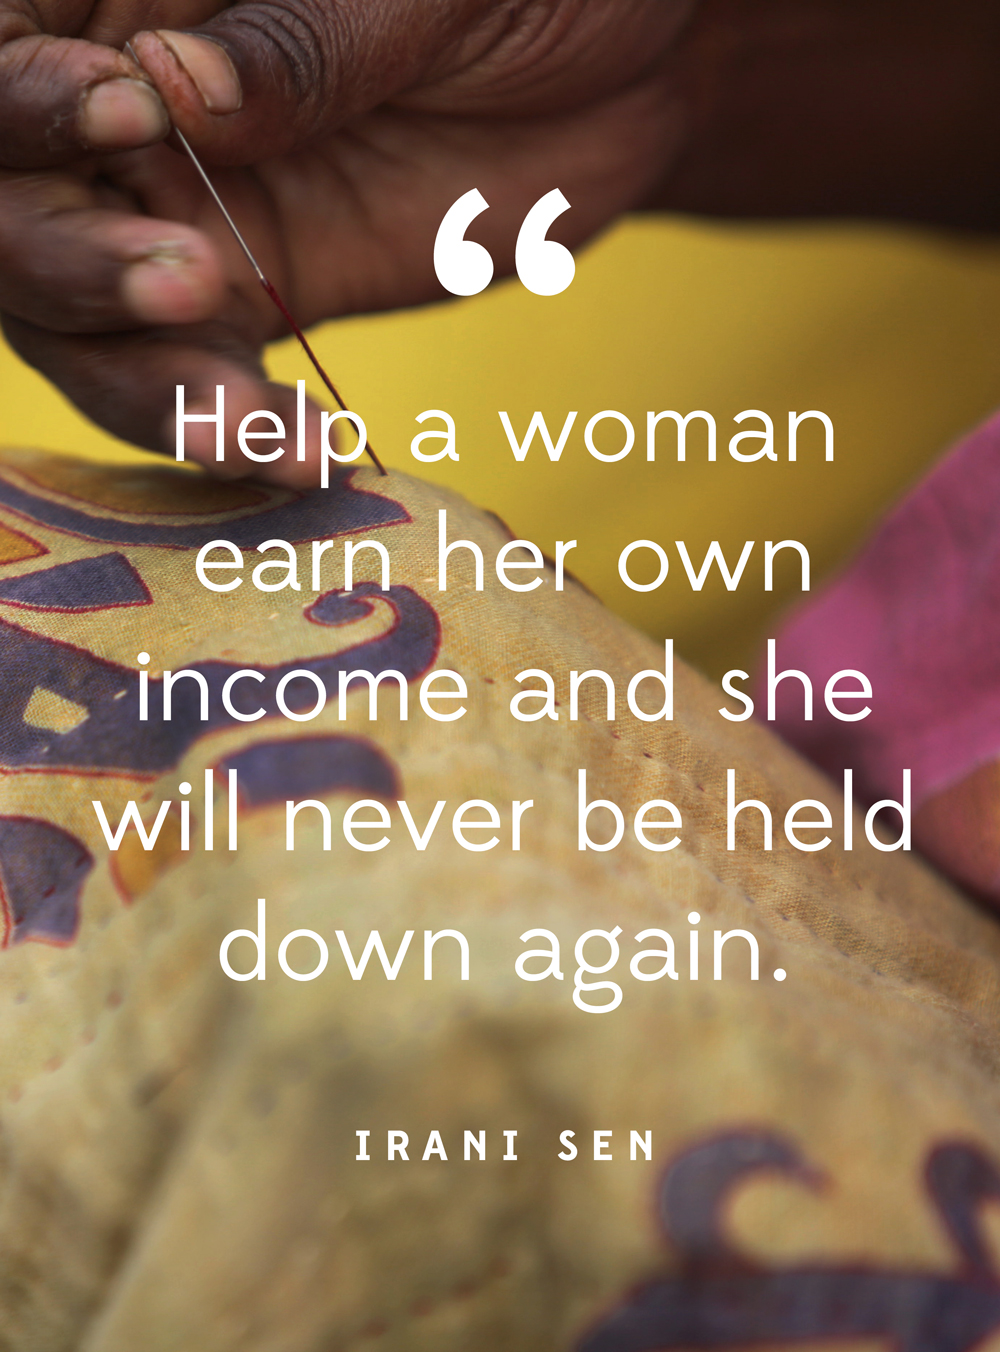 """""""Help a woman earn her own income and she will never be held down again."""" -Irani Sen"""